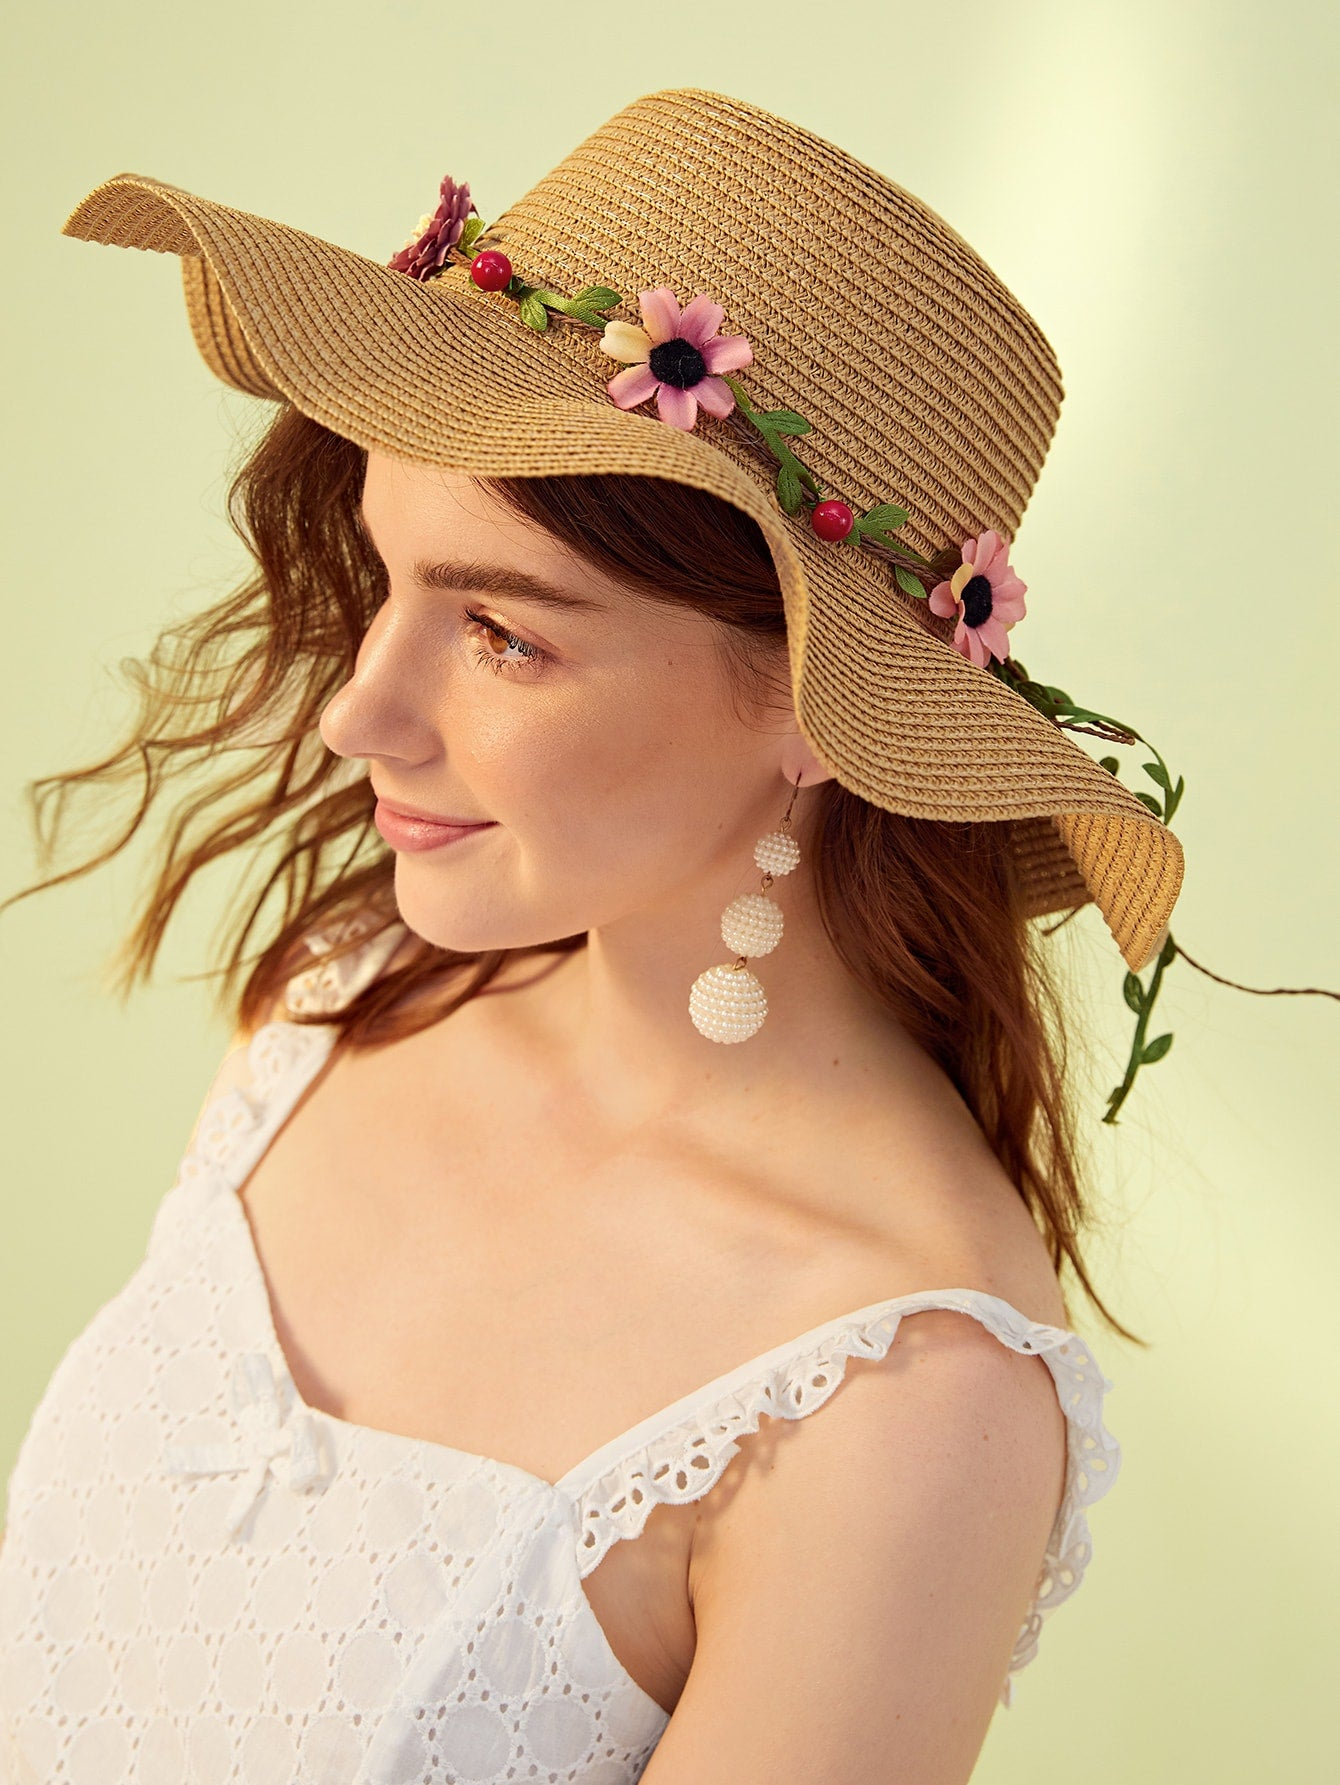 Flower & Cherry Decor Bow Knot Floppy Hat